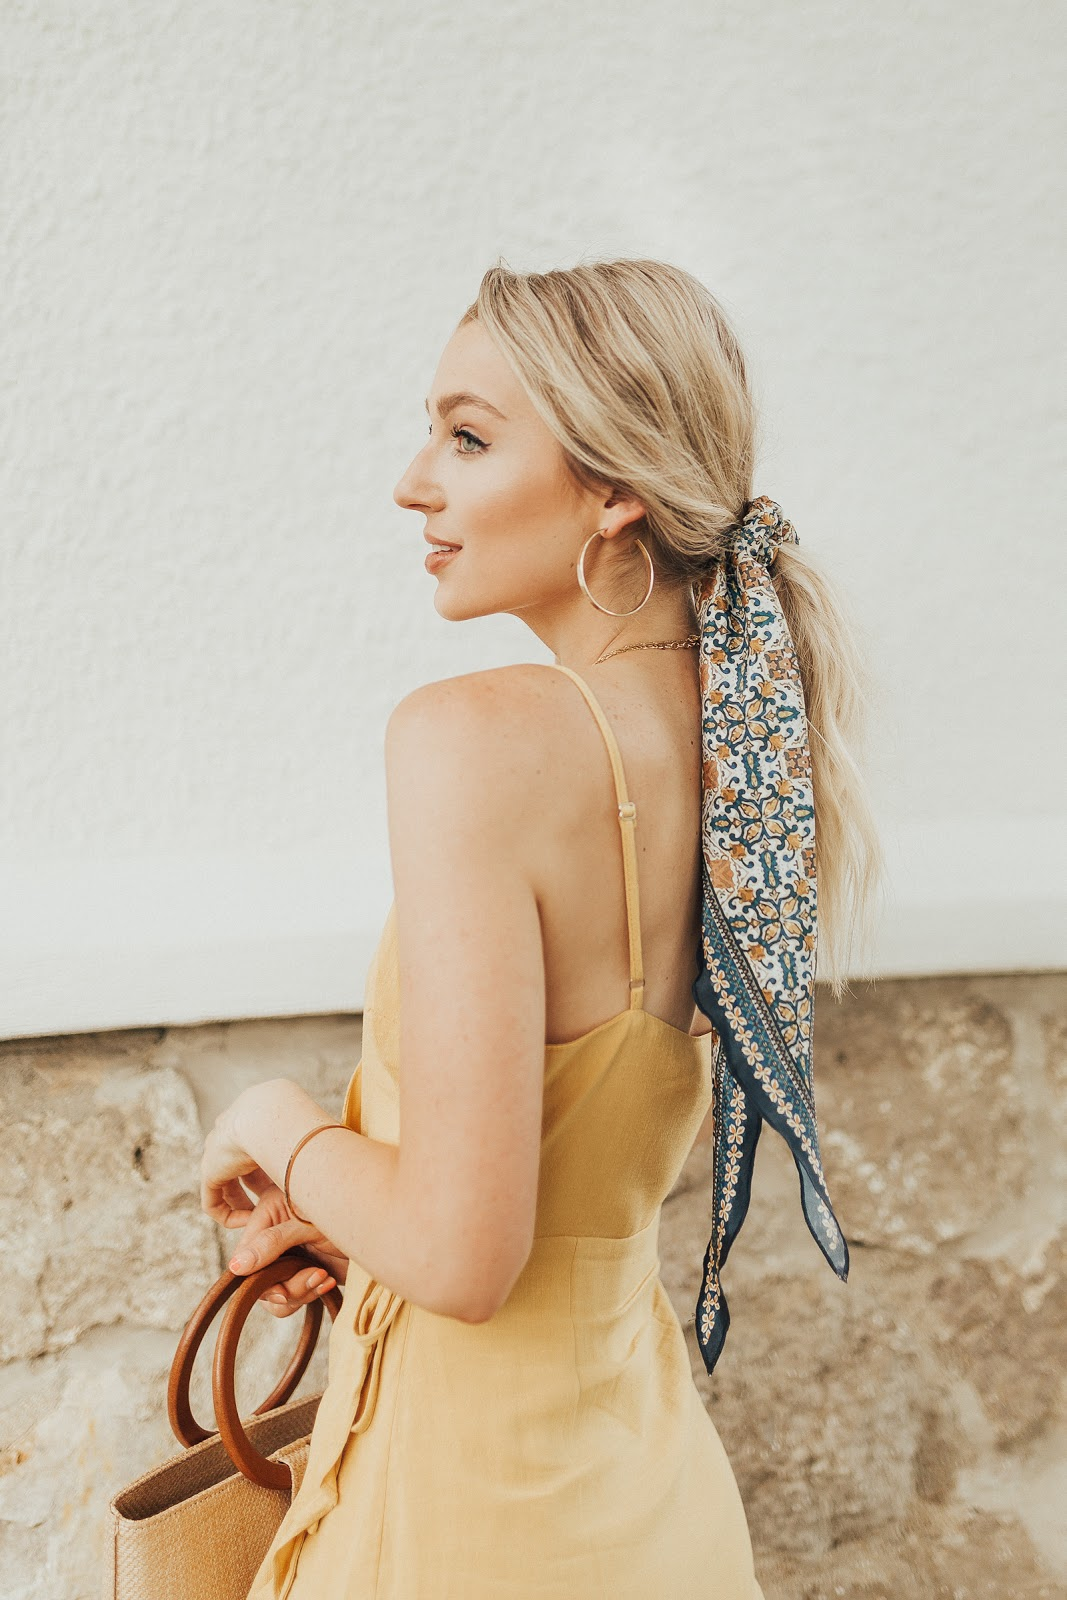 dress up a ponytail with a hair scarf